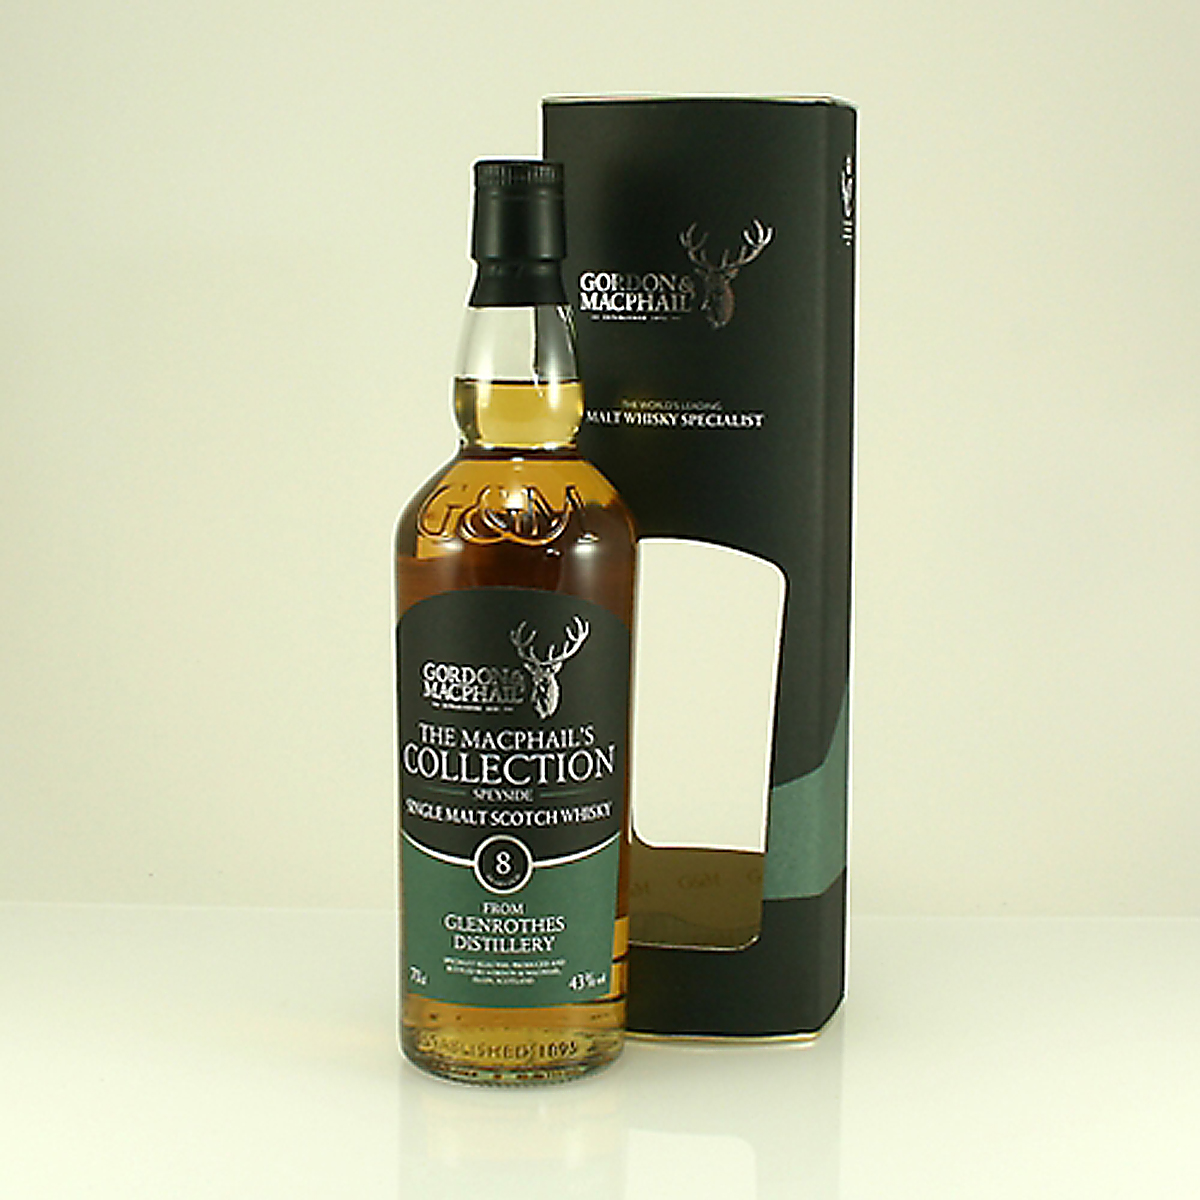 GLENROTHES 8 Y/O MacPhail's Collection 43% 70cl